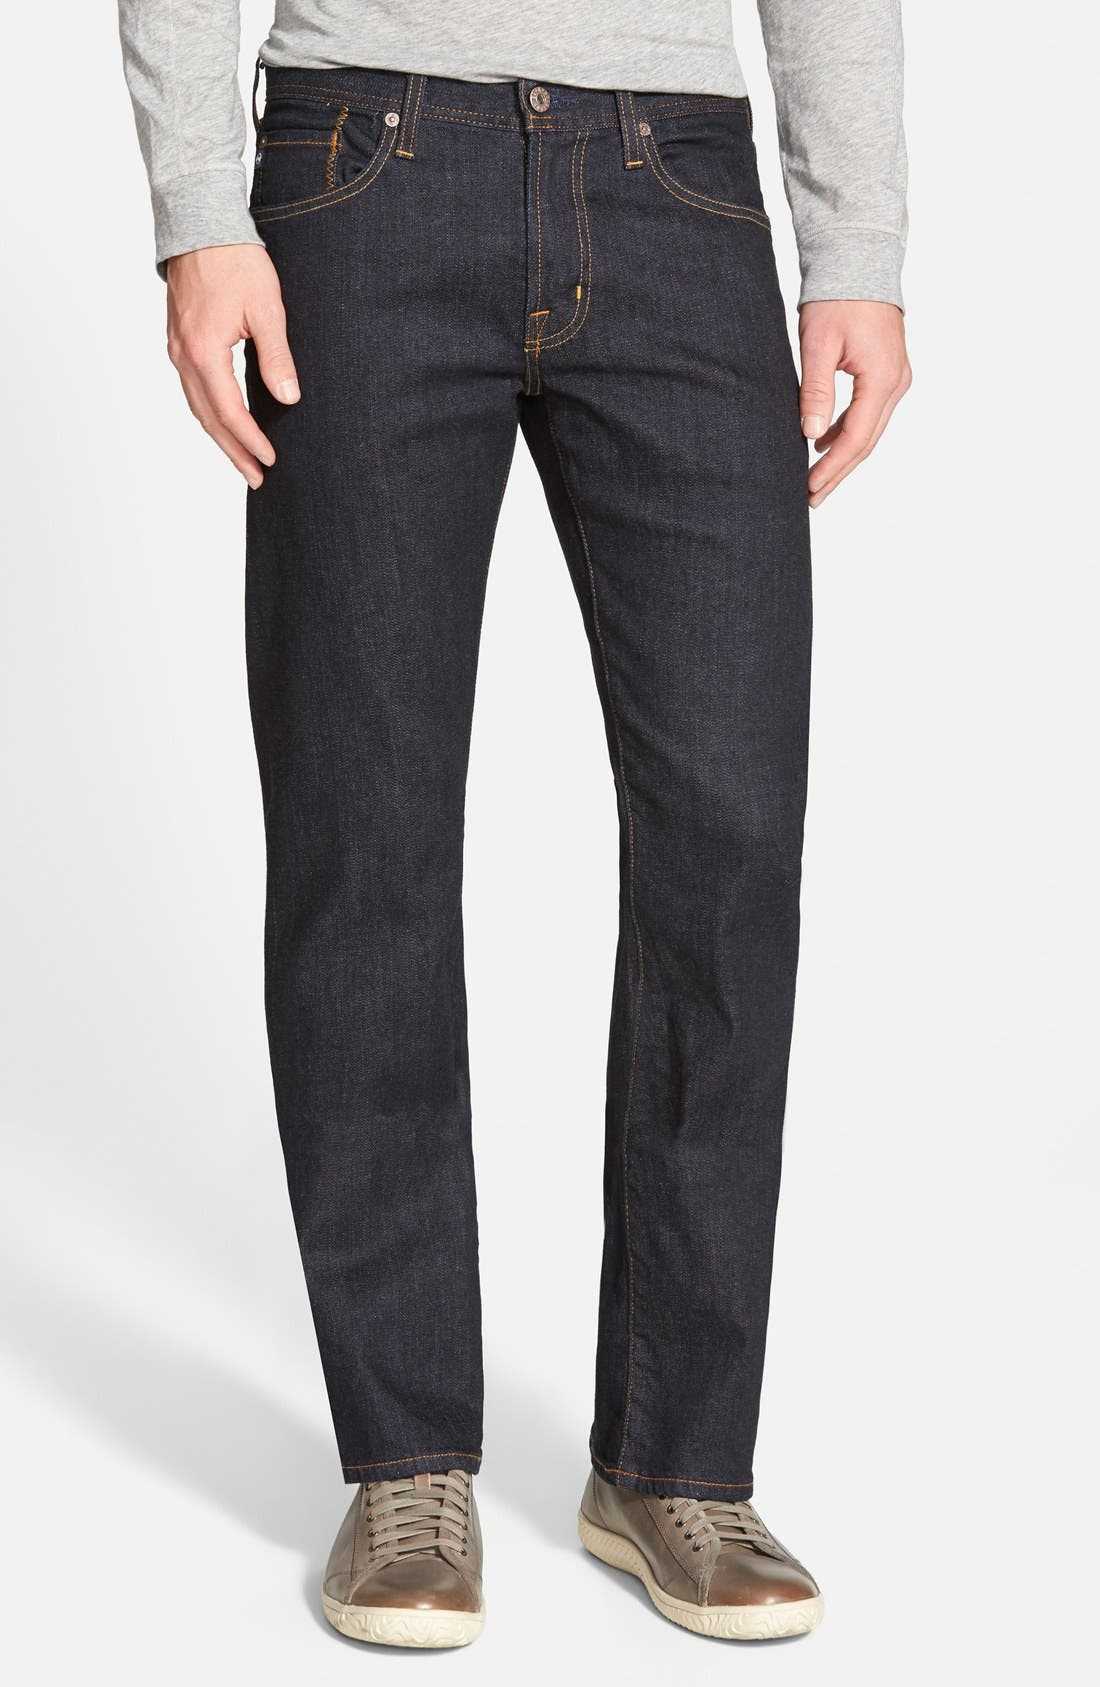 Protégé Straight Leg Jeans,                         Main,                         color, Jack